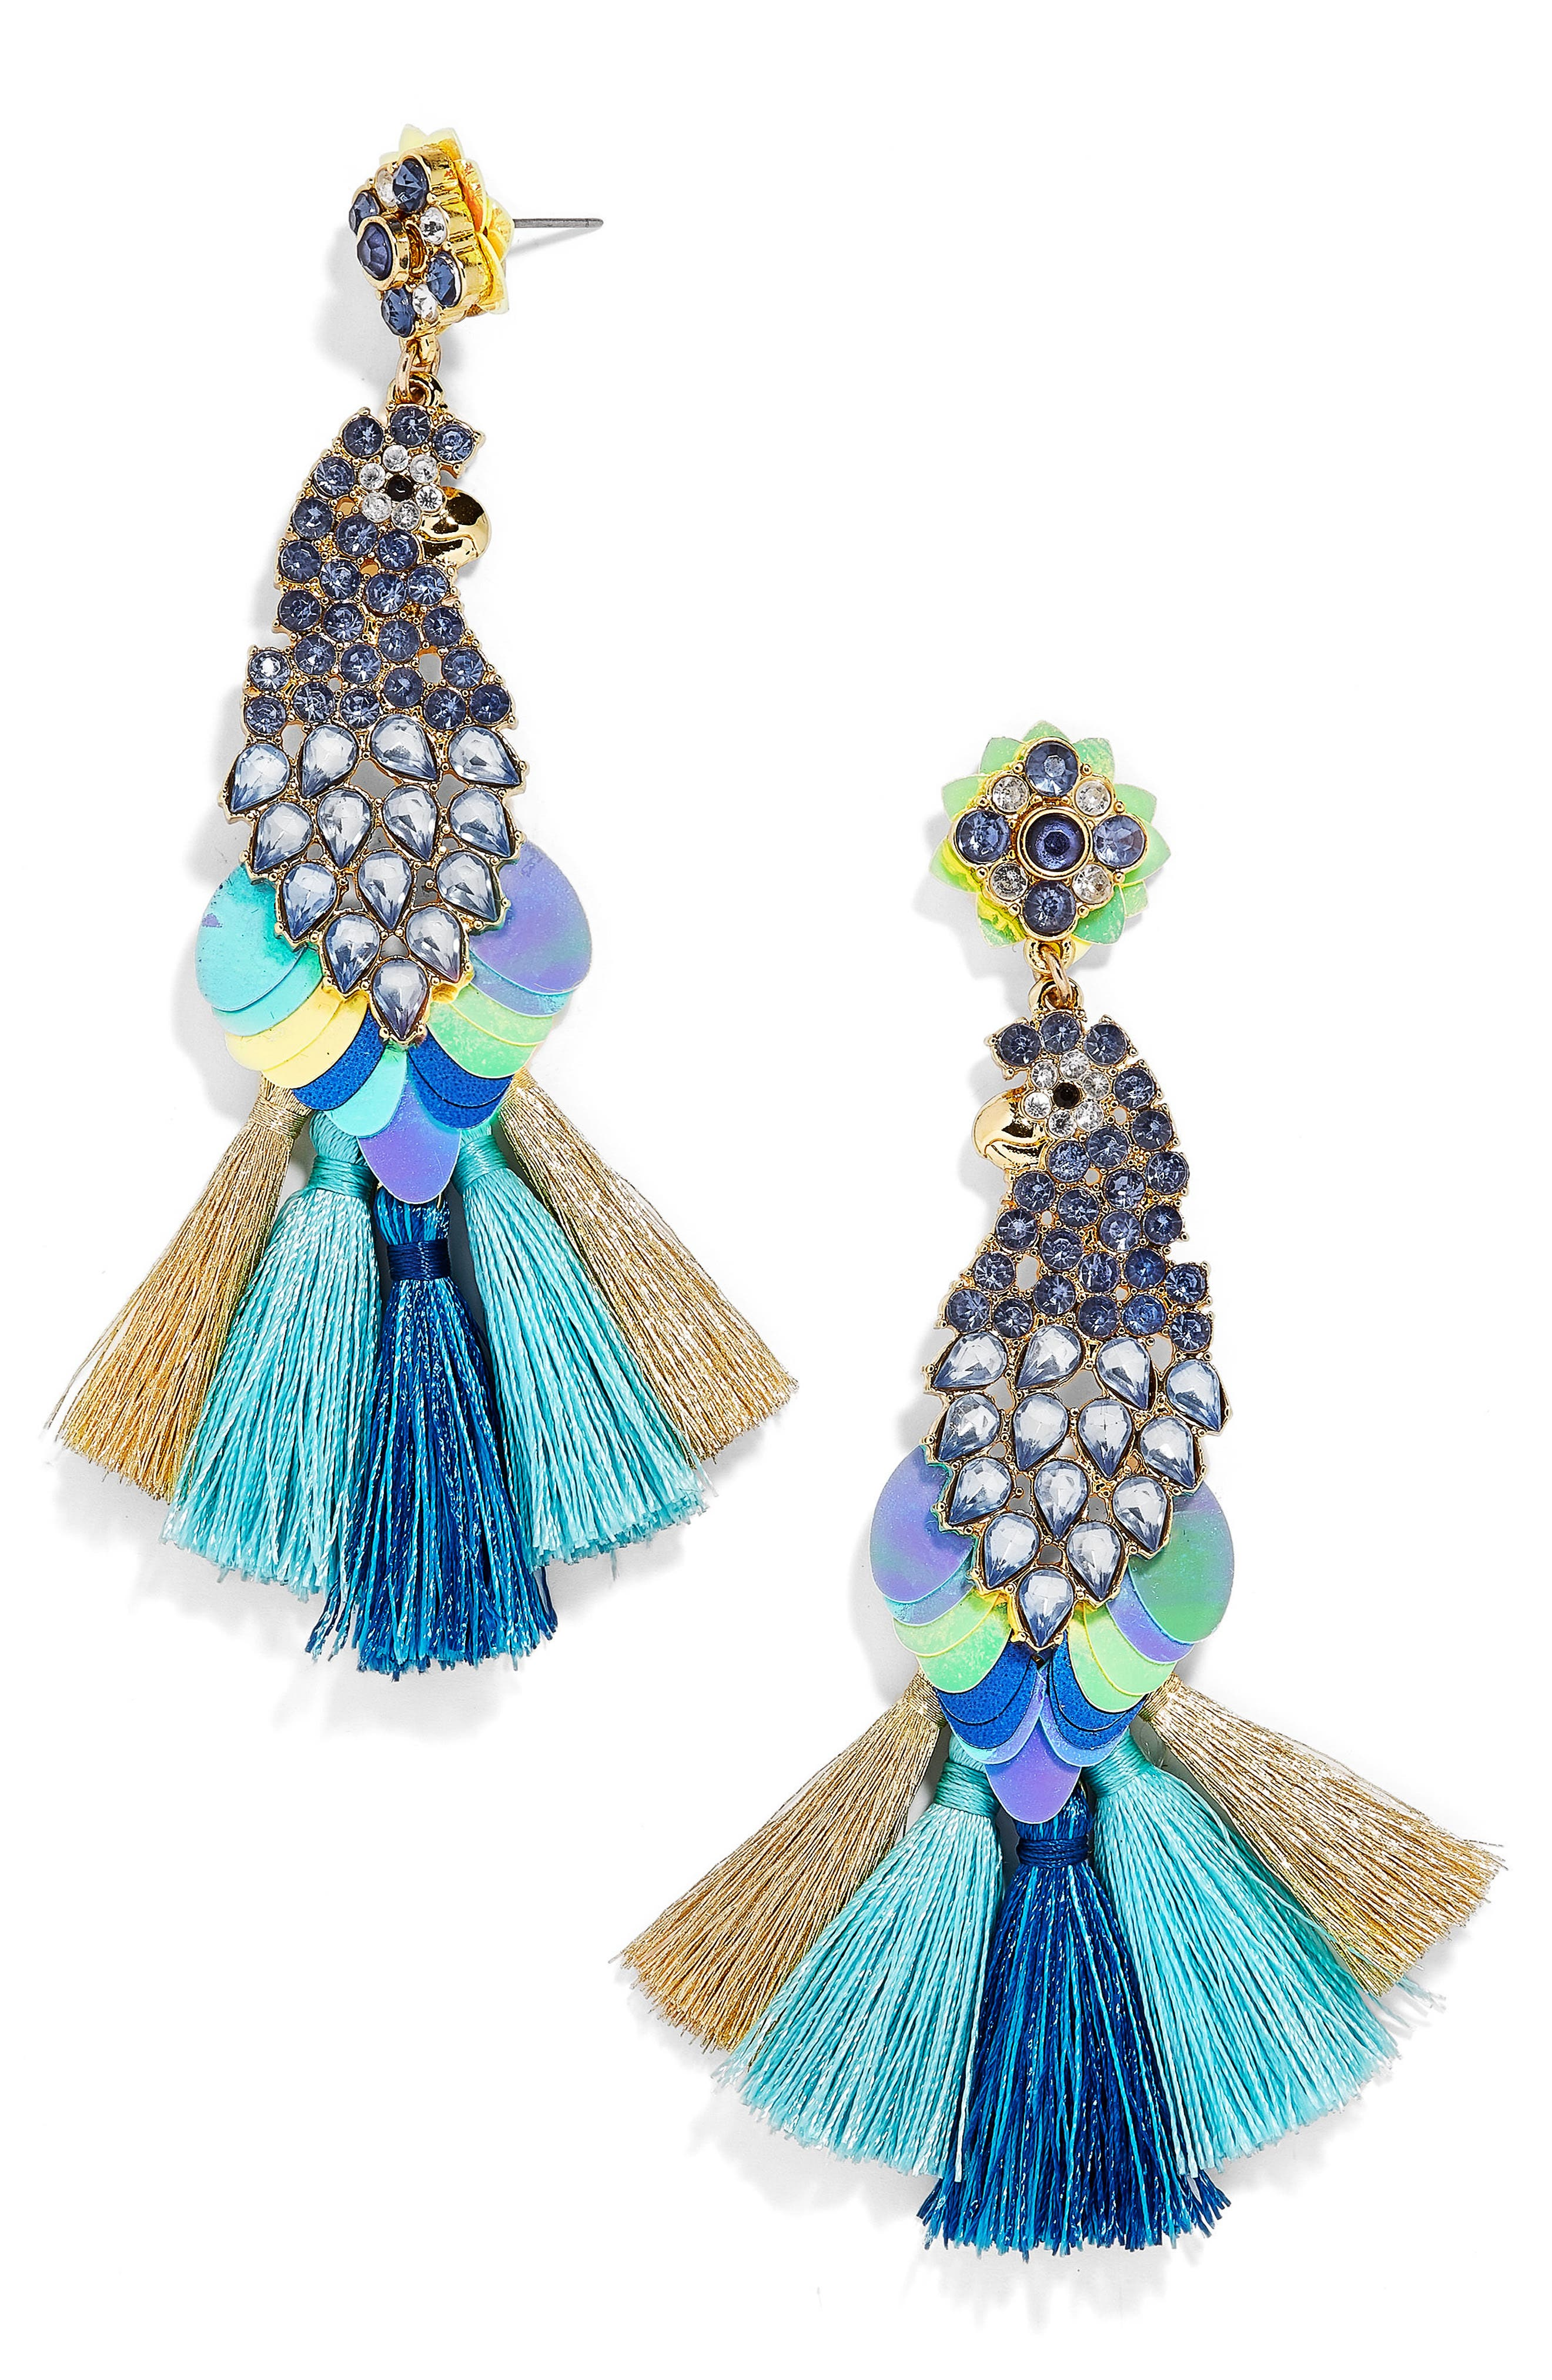 Macaw Statement Earrings,                             Main thumbnail 1, color,                             400